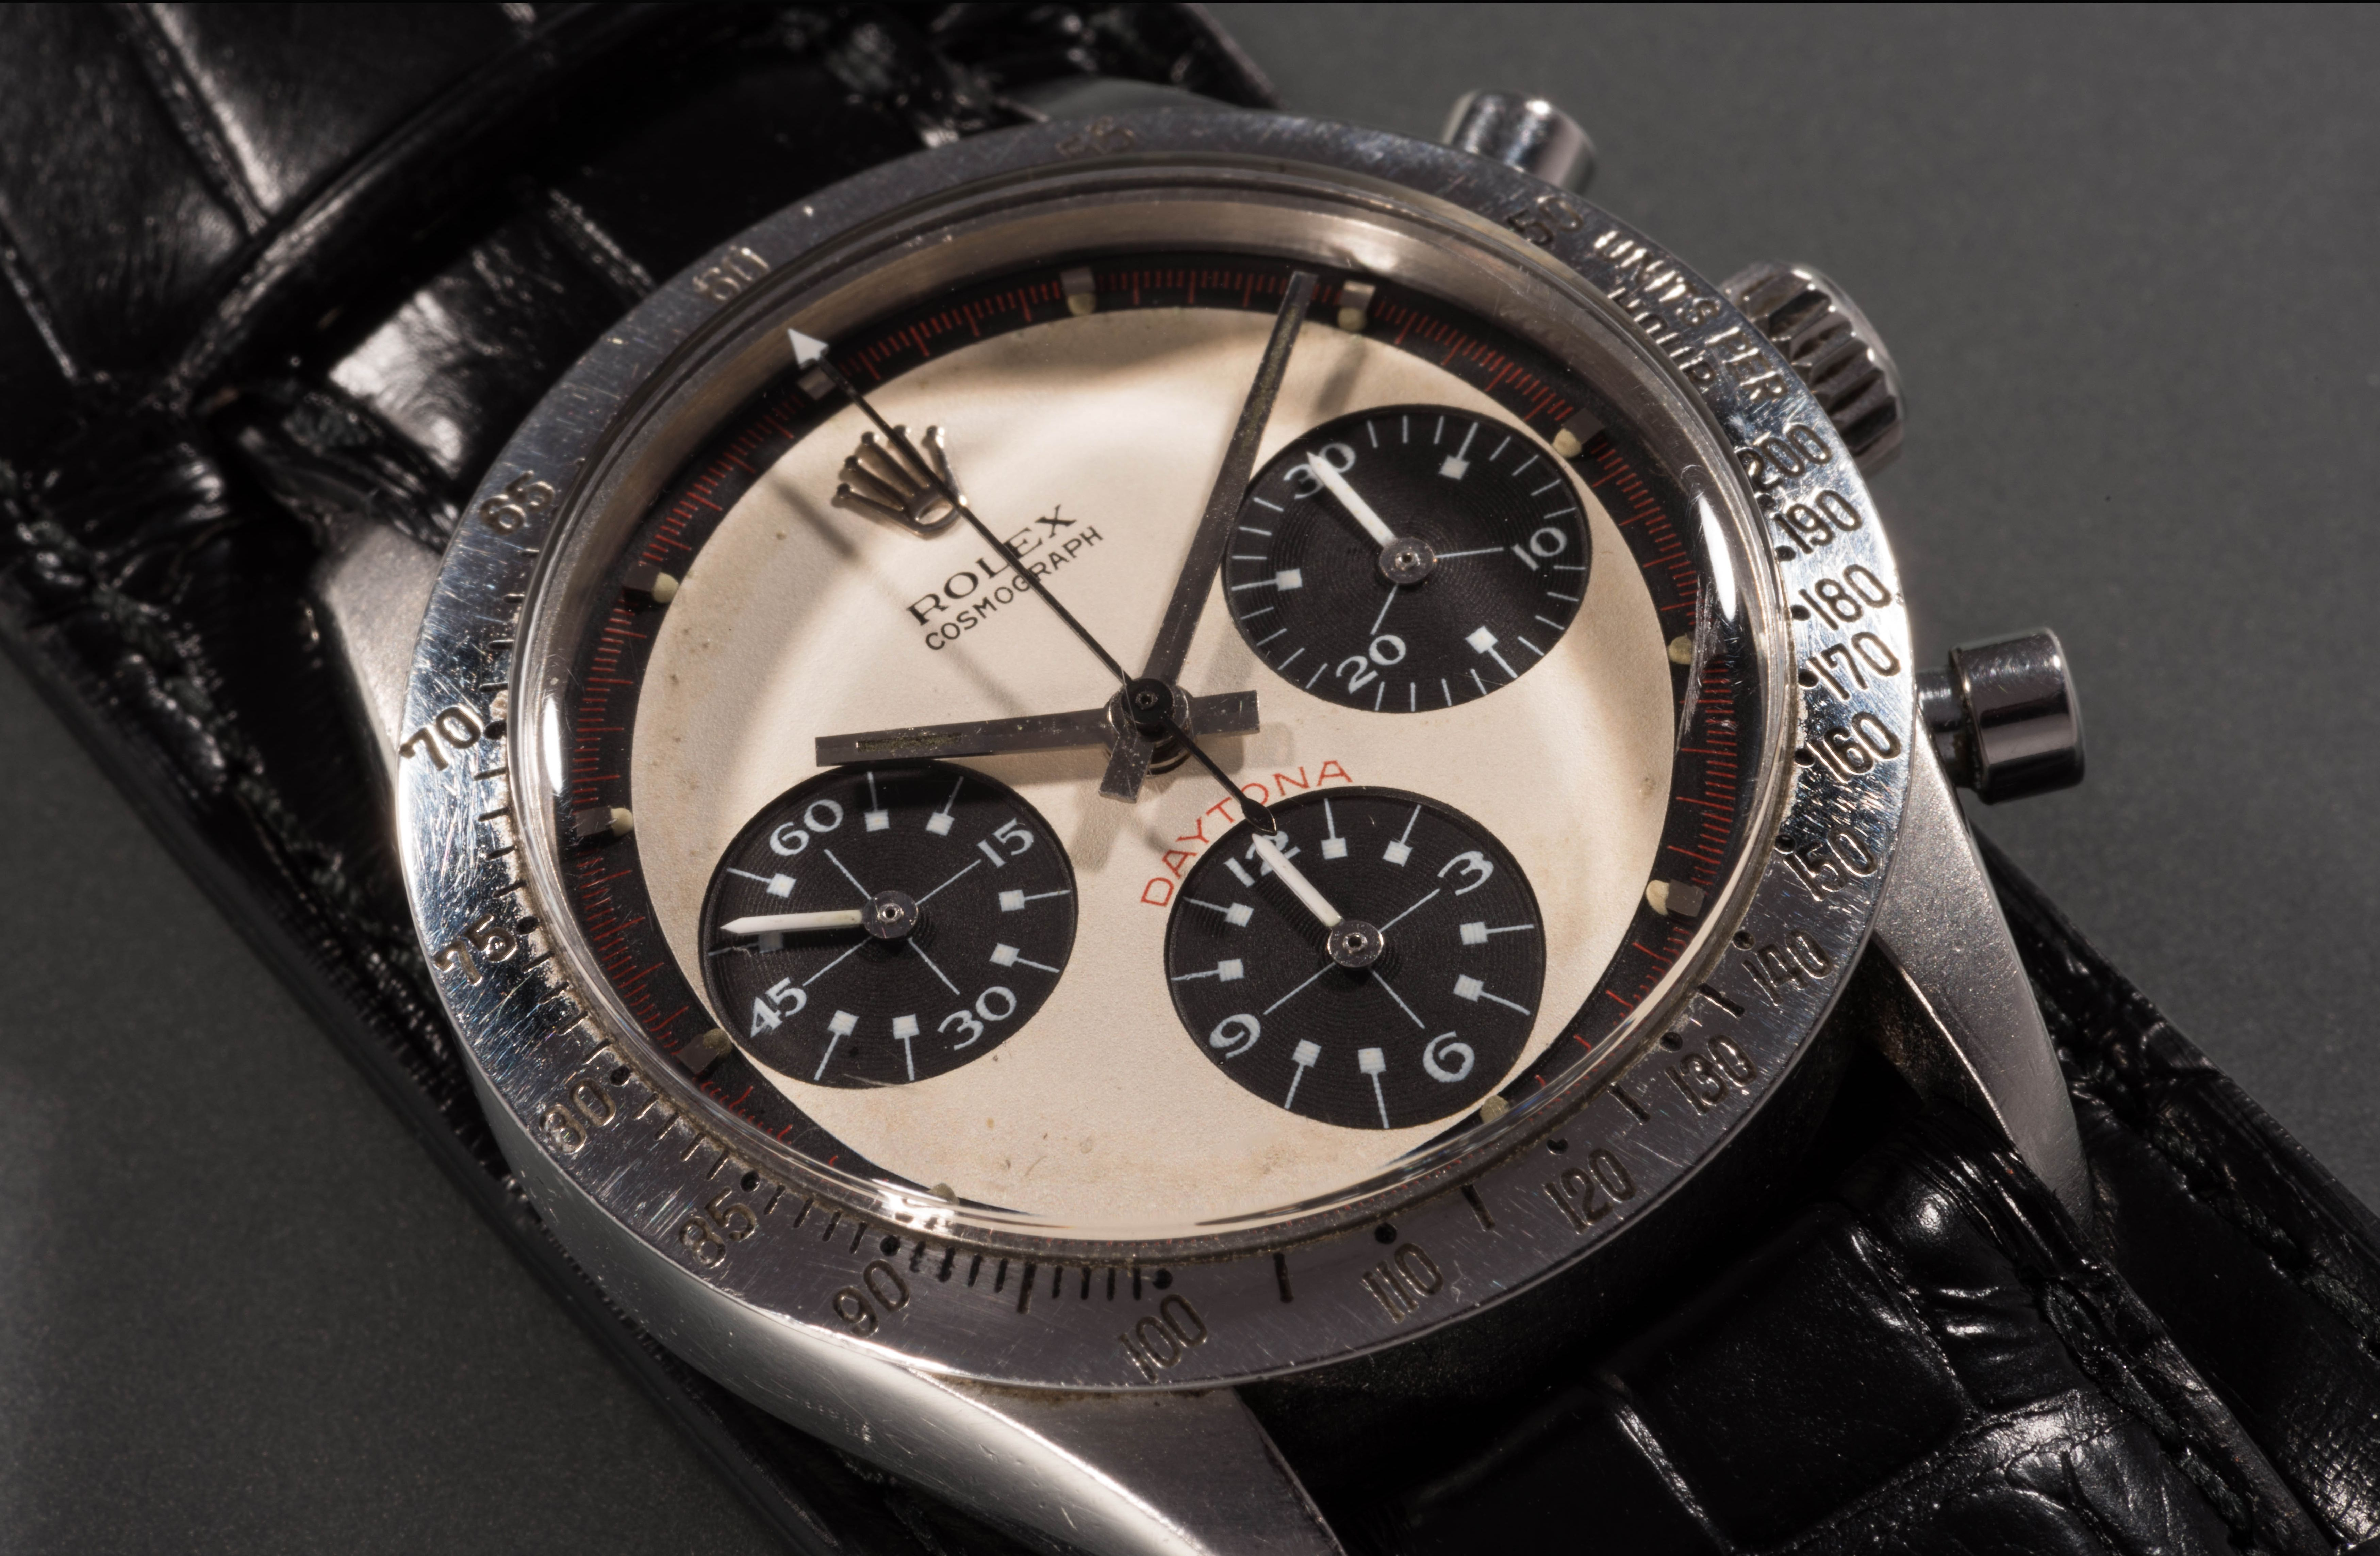 Rolex Cosmograph Daytona watchPaul Newman Rolex watch sells for world record price, New York, USA - 26 Oct 2017A rare Rolex watch owned by the late movie star Paul Newman today sold for a world record £13.5m. The legendary actor received the Rolex Cosmograph Daytona as a present from his wife Joanne Woodward in 1968. She bought the timepiece from the prestigious Tiffany & Co store in New York and had it engraved with the message 'drive carefully' in light of her husband's fledgling motor racing career. Newman wore it daily for more than 15 years before passing it on to his daughter's then boyfriend, James Cox, while he stayed with the family one summer in the early 1980s. It sold at Phillips Auctions of New York.